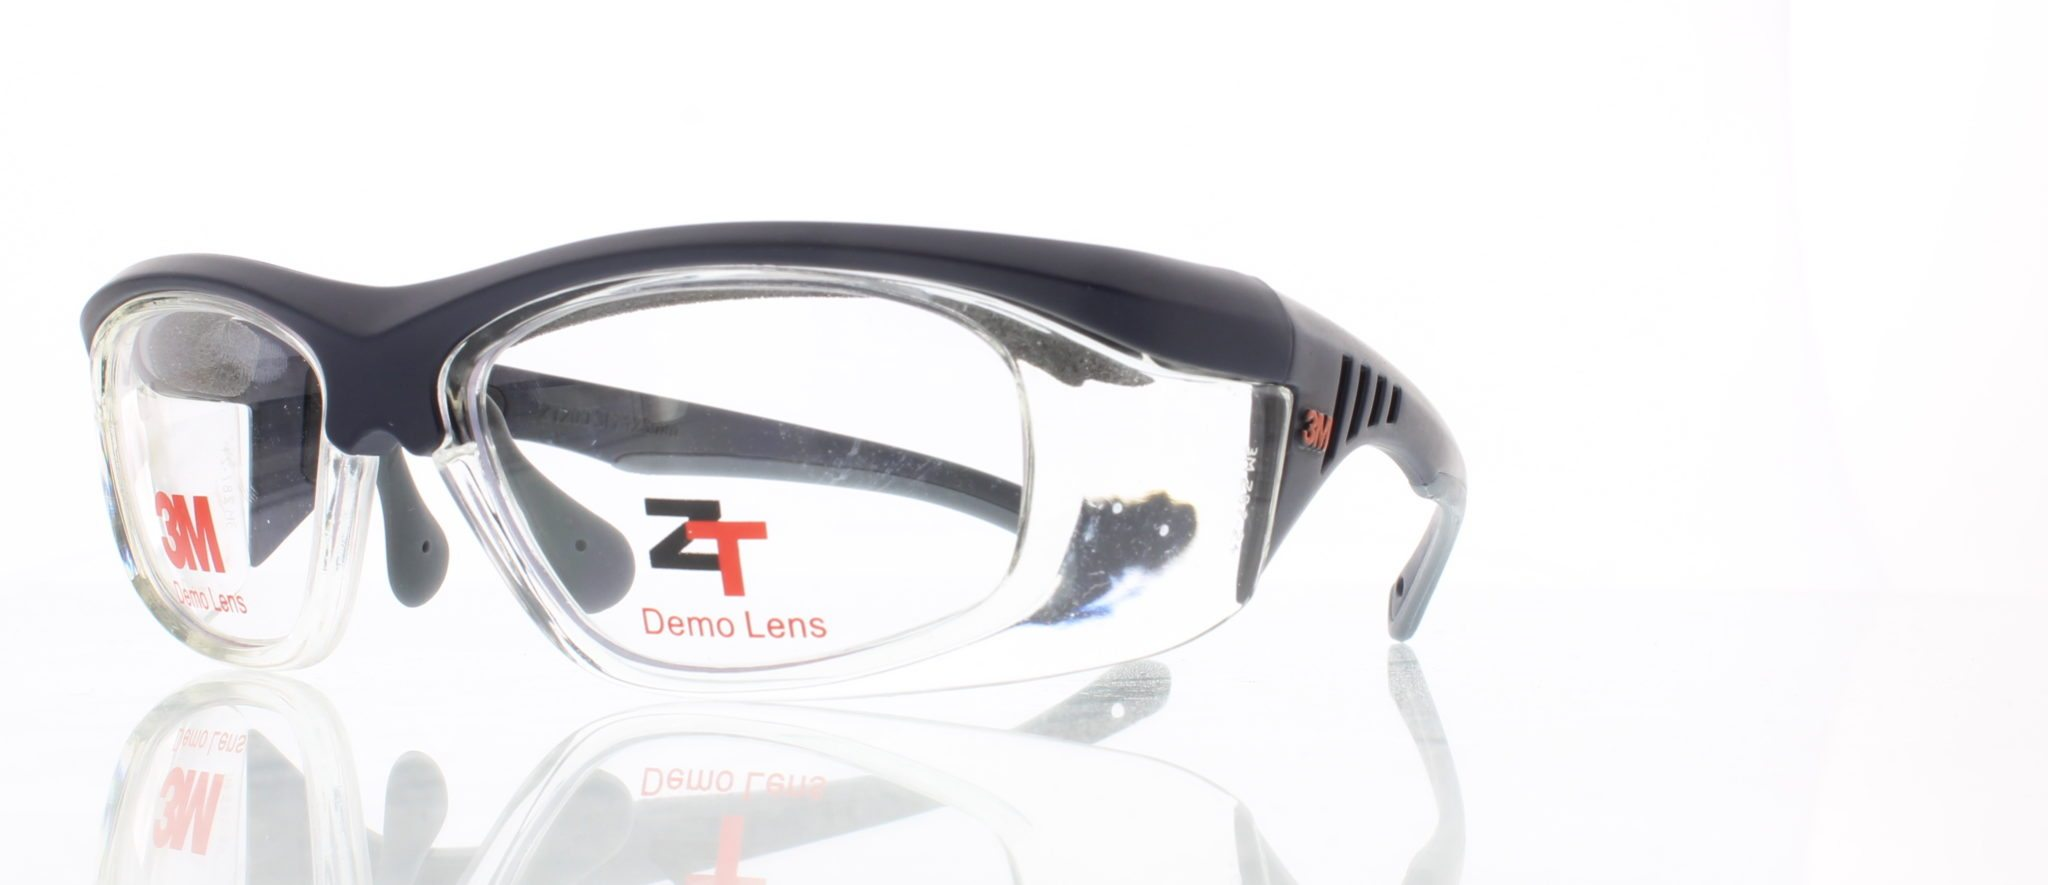 3m Zt200 3m 3m Prescription Eyewear 3m Prescription